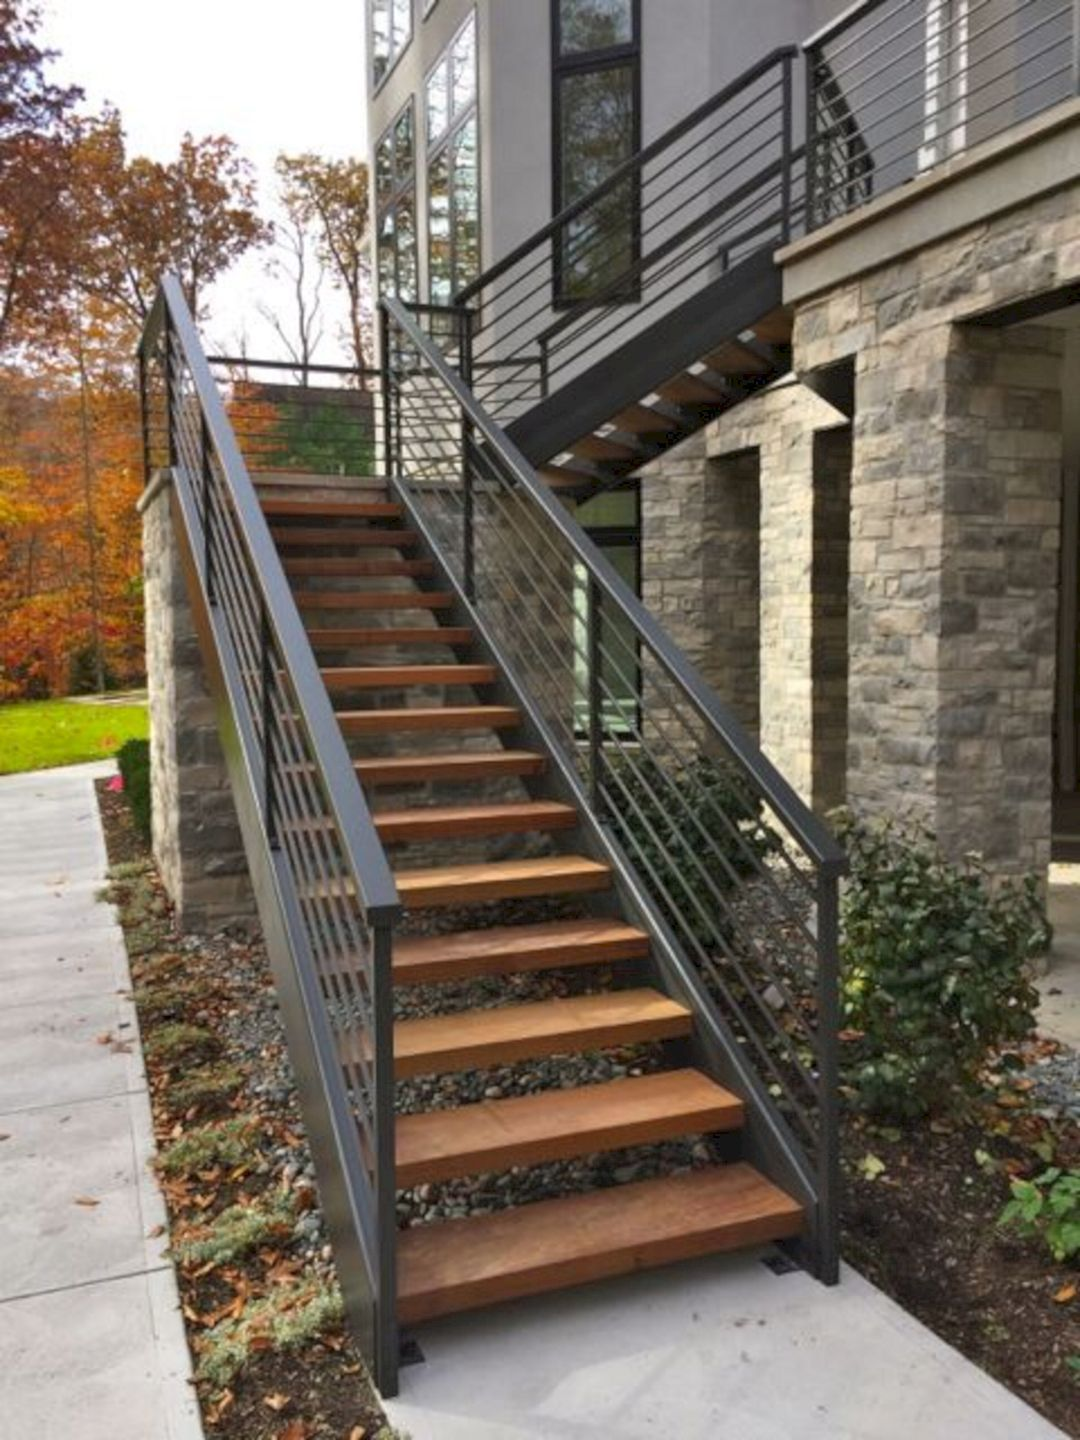 Outdoor Wooden Stairs Ideas 30 (Outdoor Wooden Stairs ... on Backyard Stairs Design  id=99068